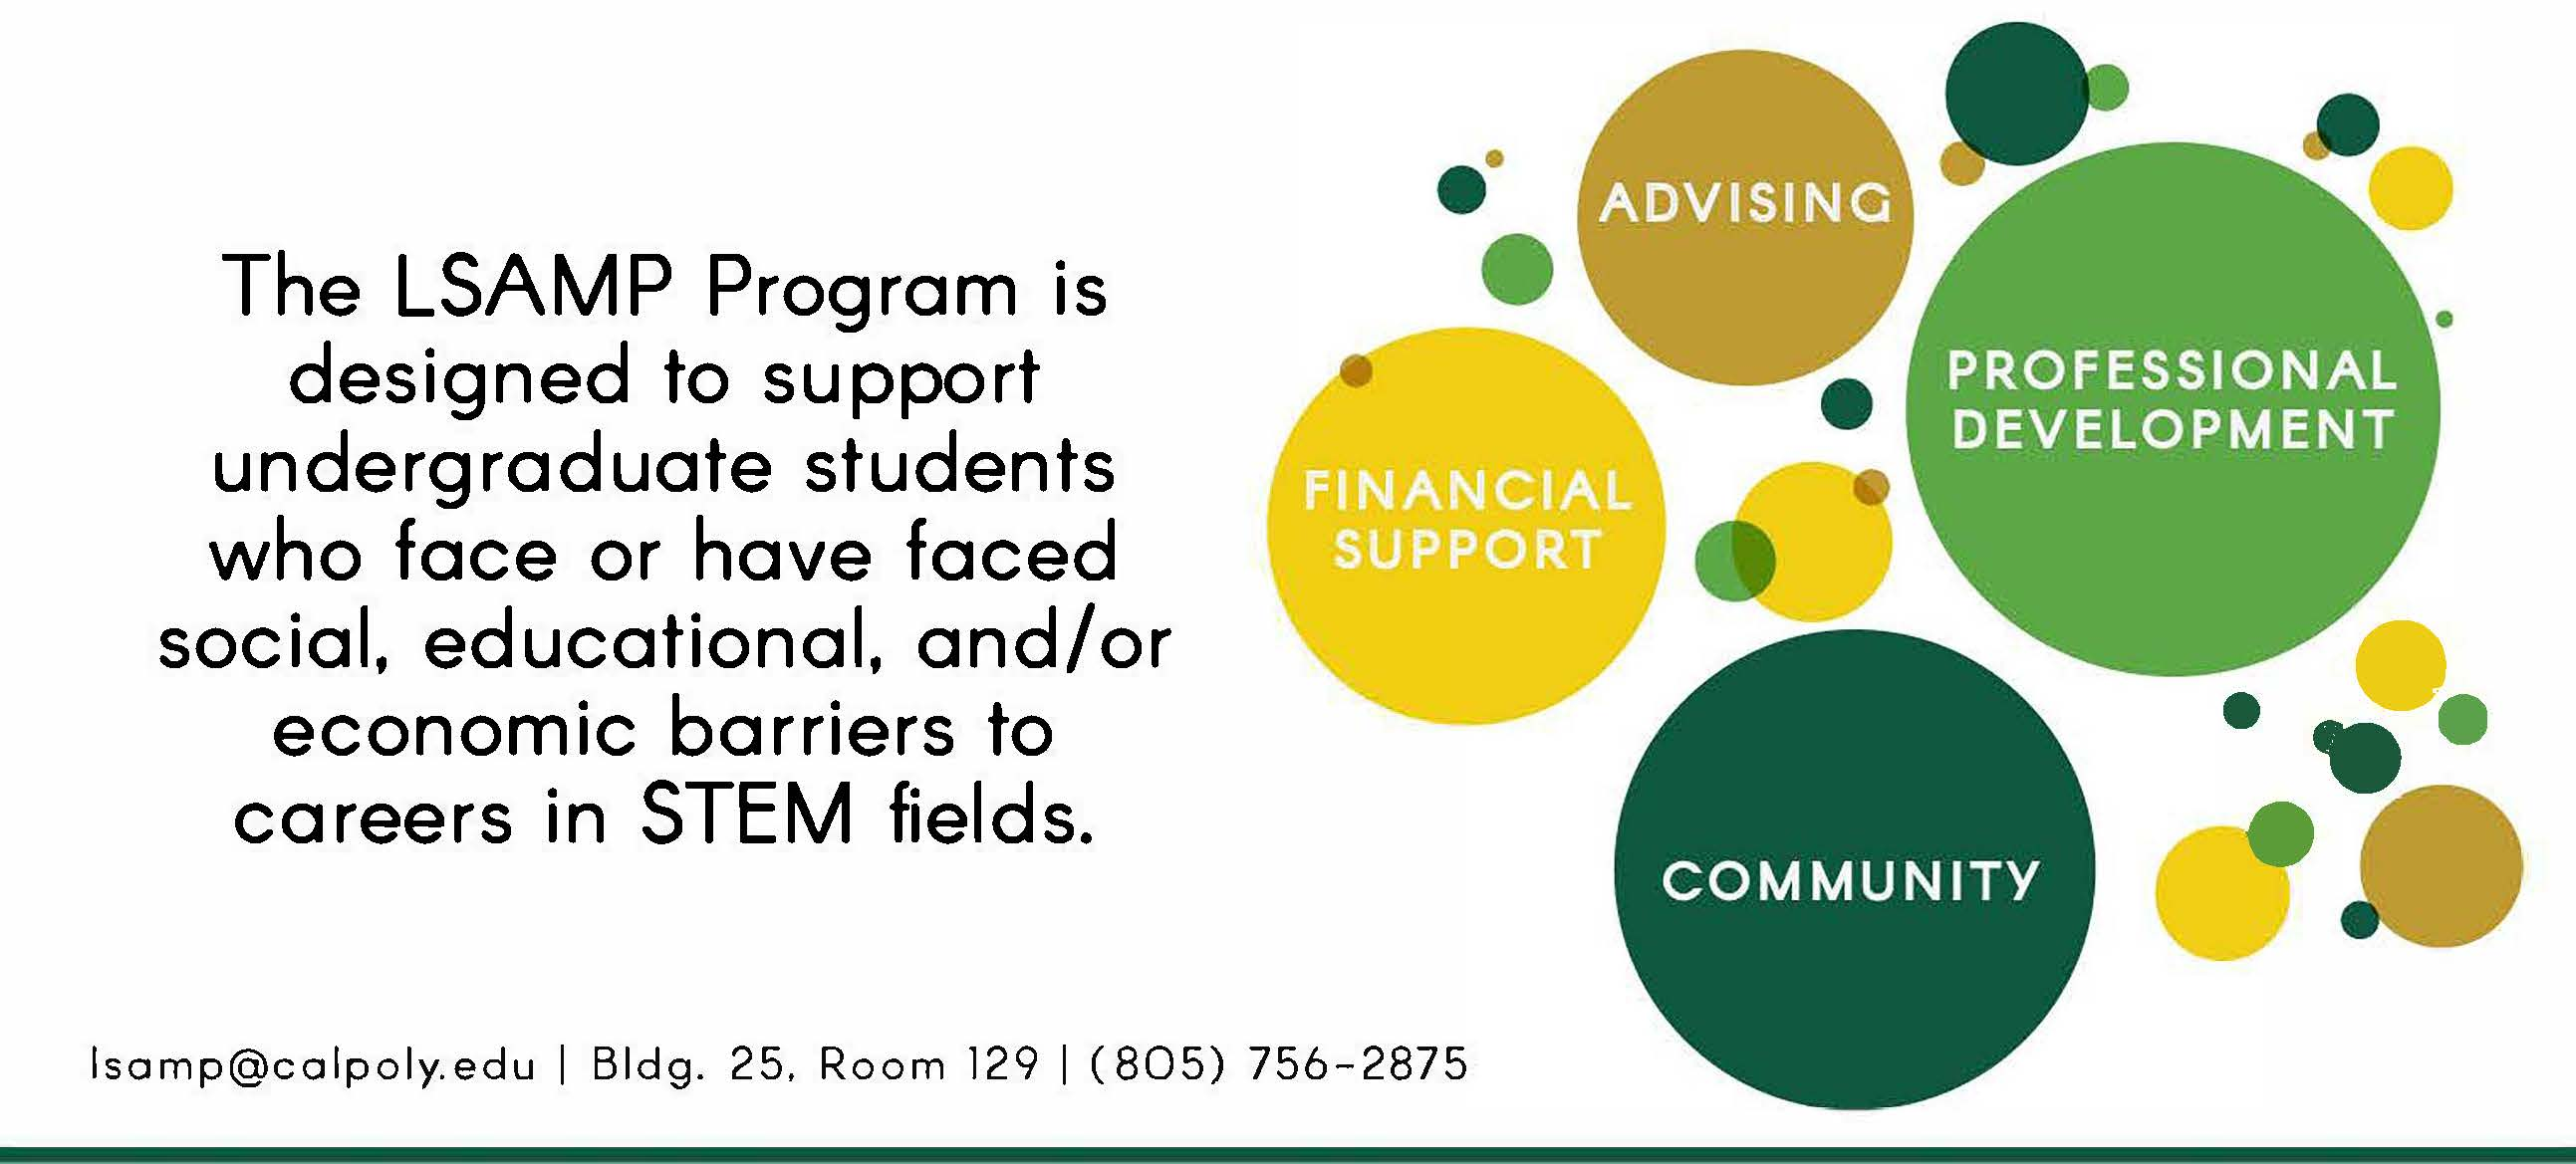 The LSAMP Program is designed to support undergraduate students who face or have faced social, educational, and/or economic barriers to careers in STEM fields